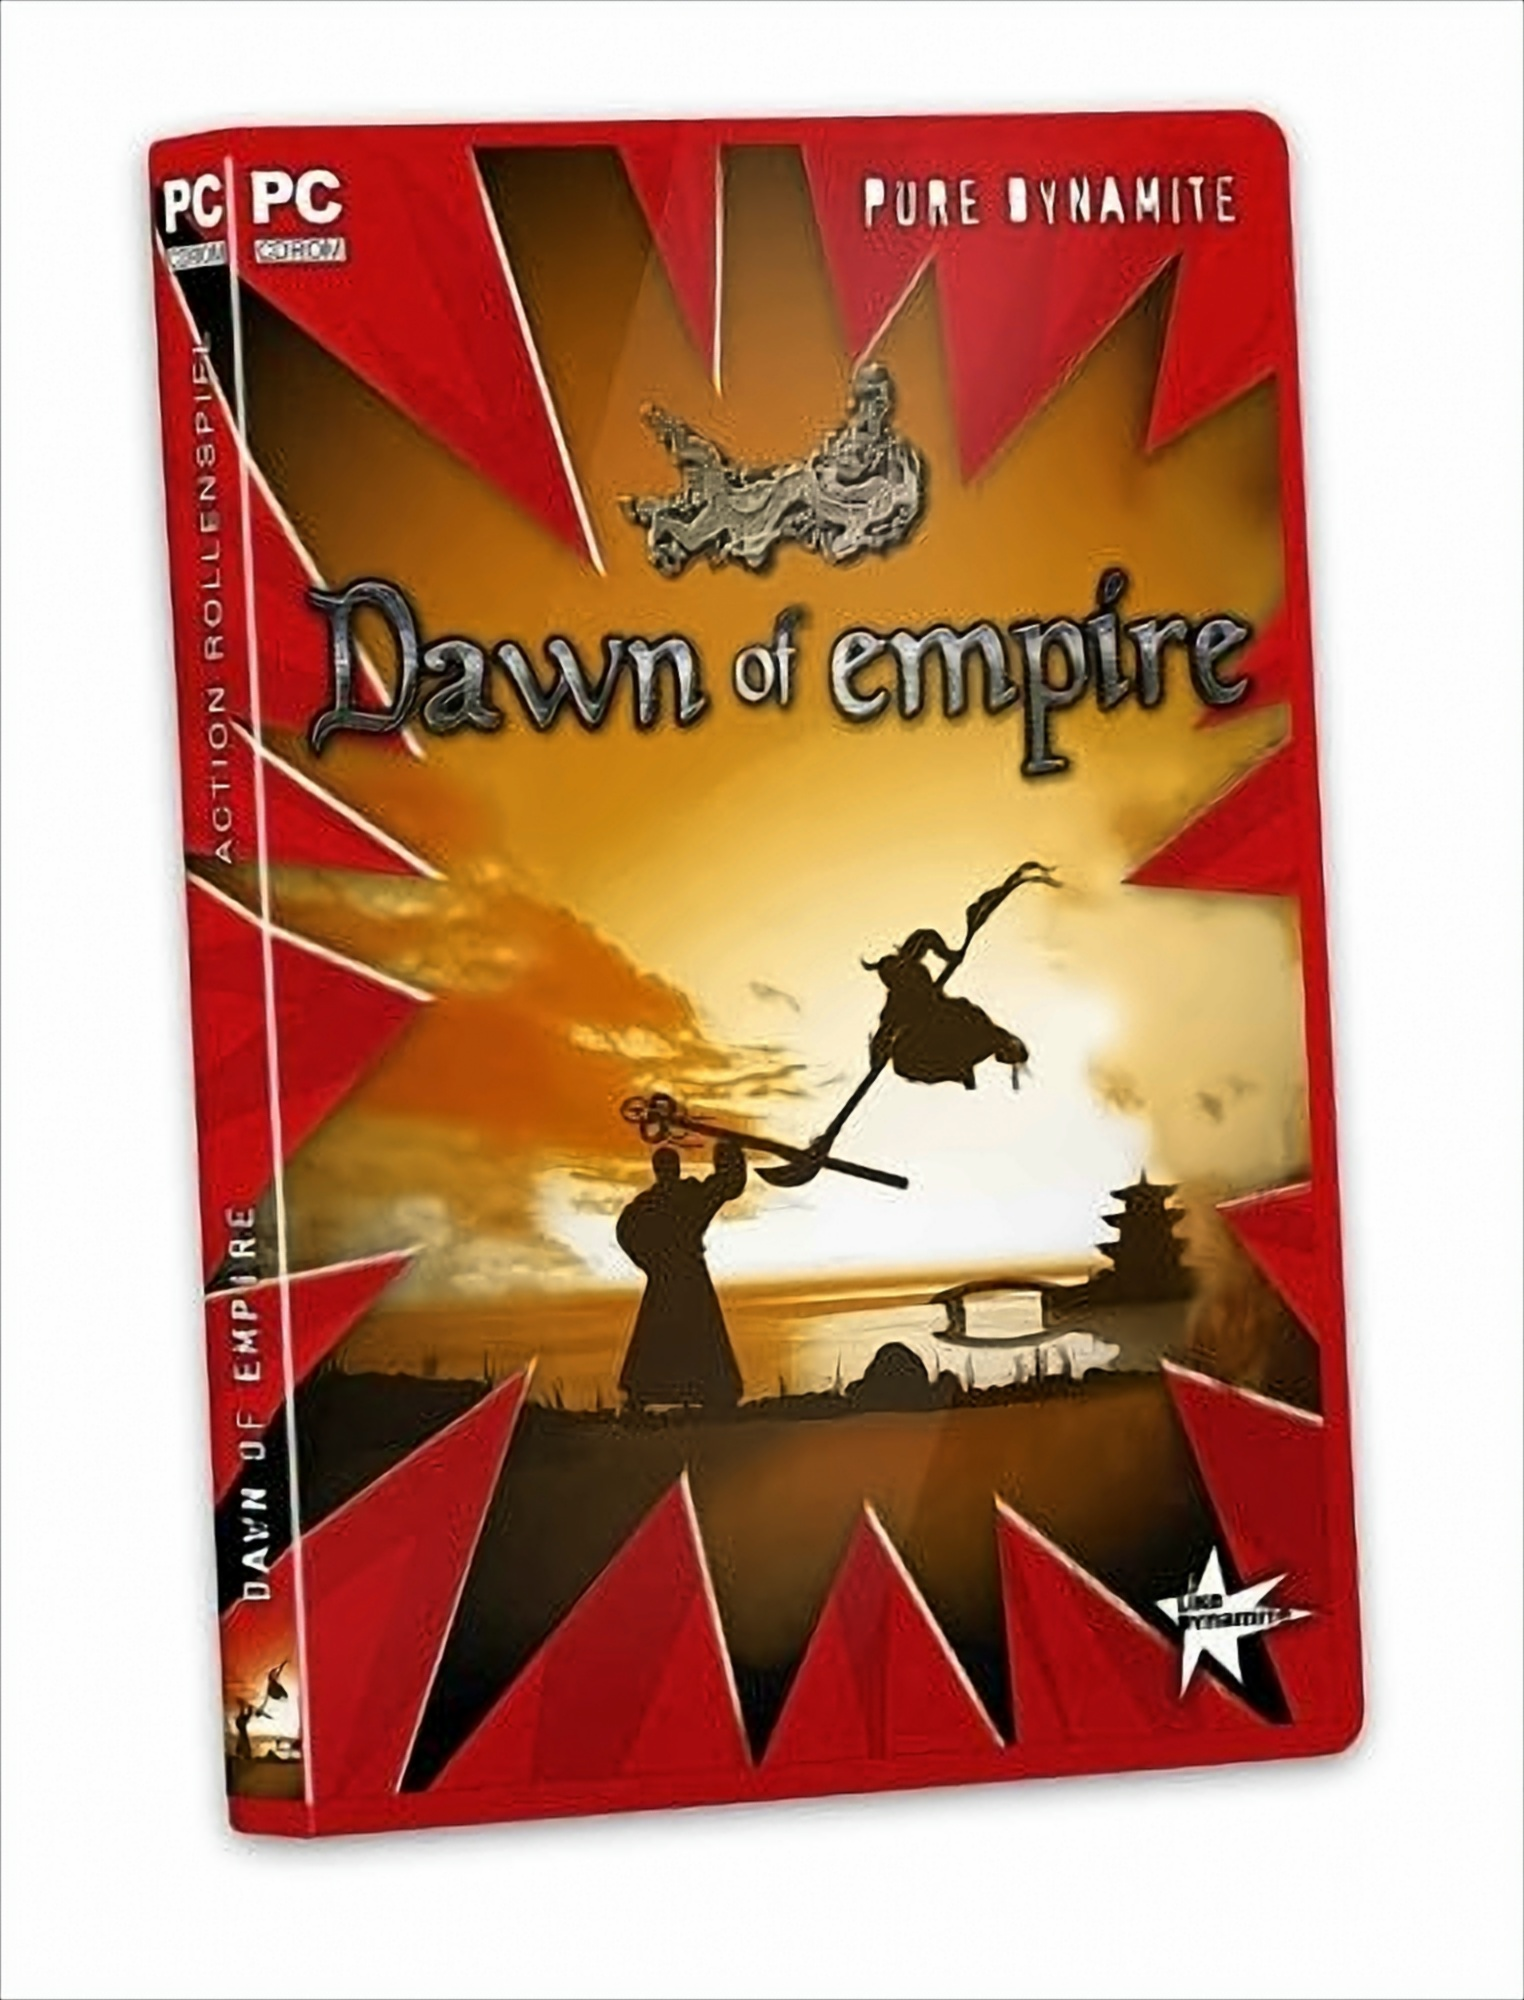 Dawn of Empire [Pure Dynamite]